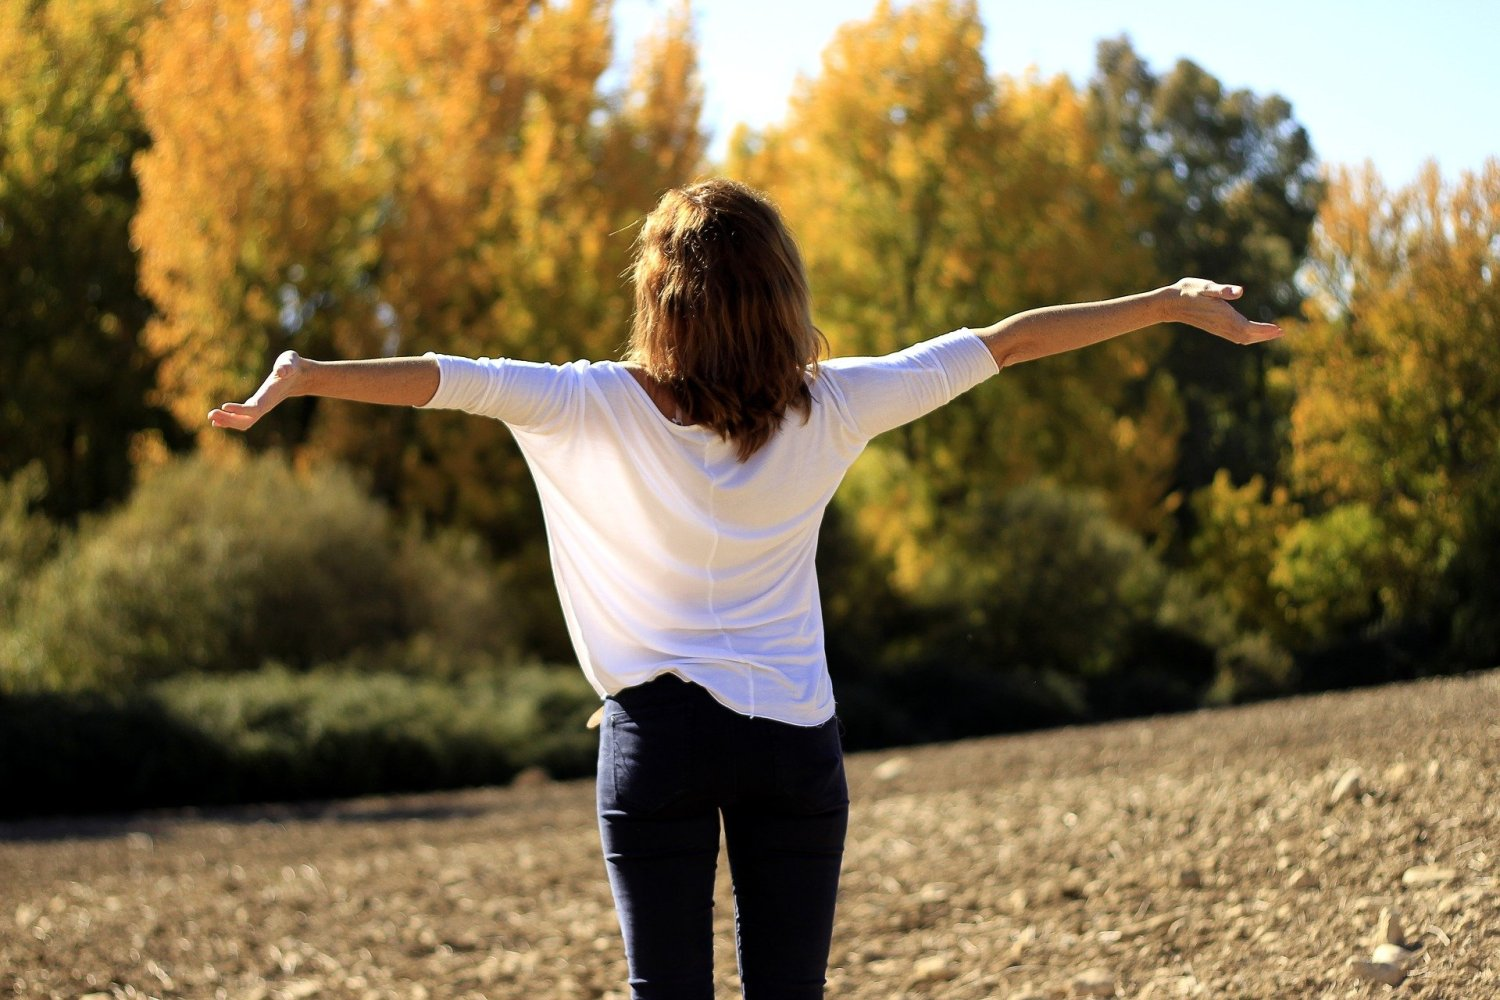 how expanding confidence and self-esteem improves your mental health